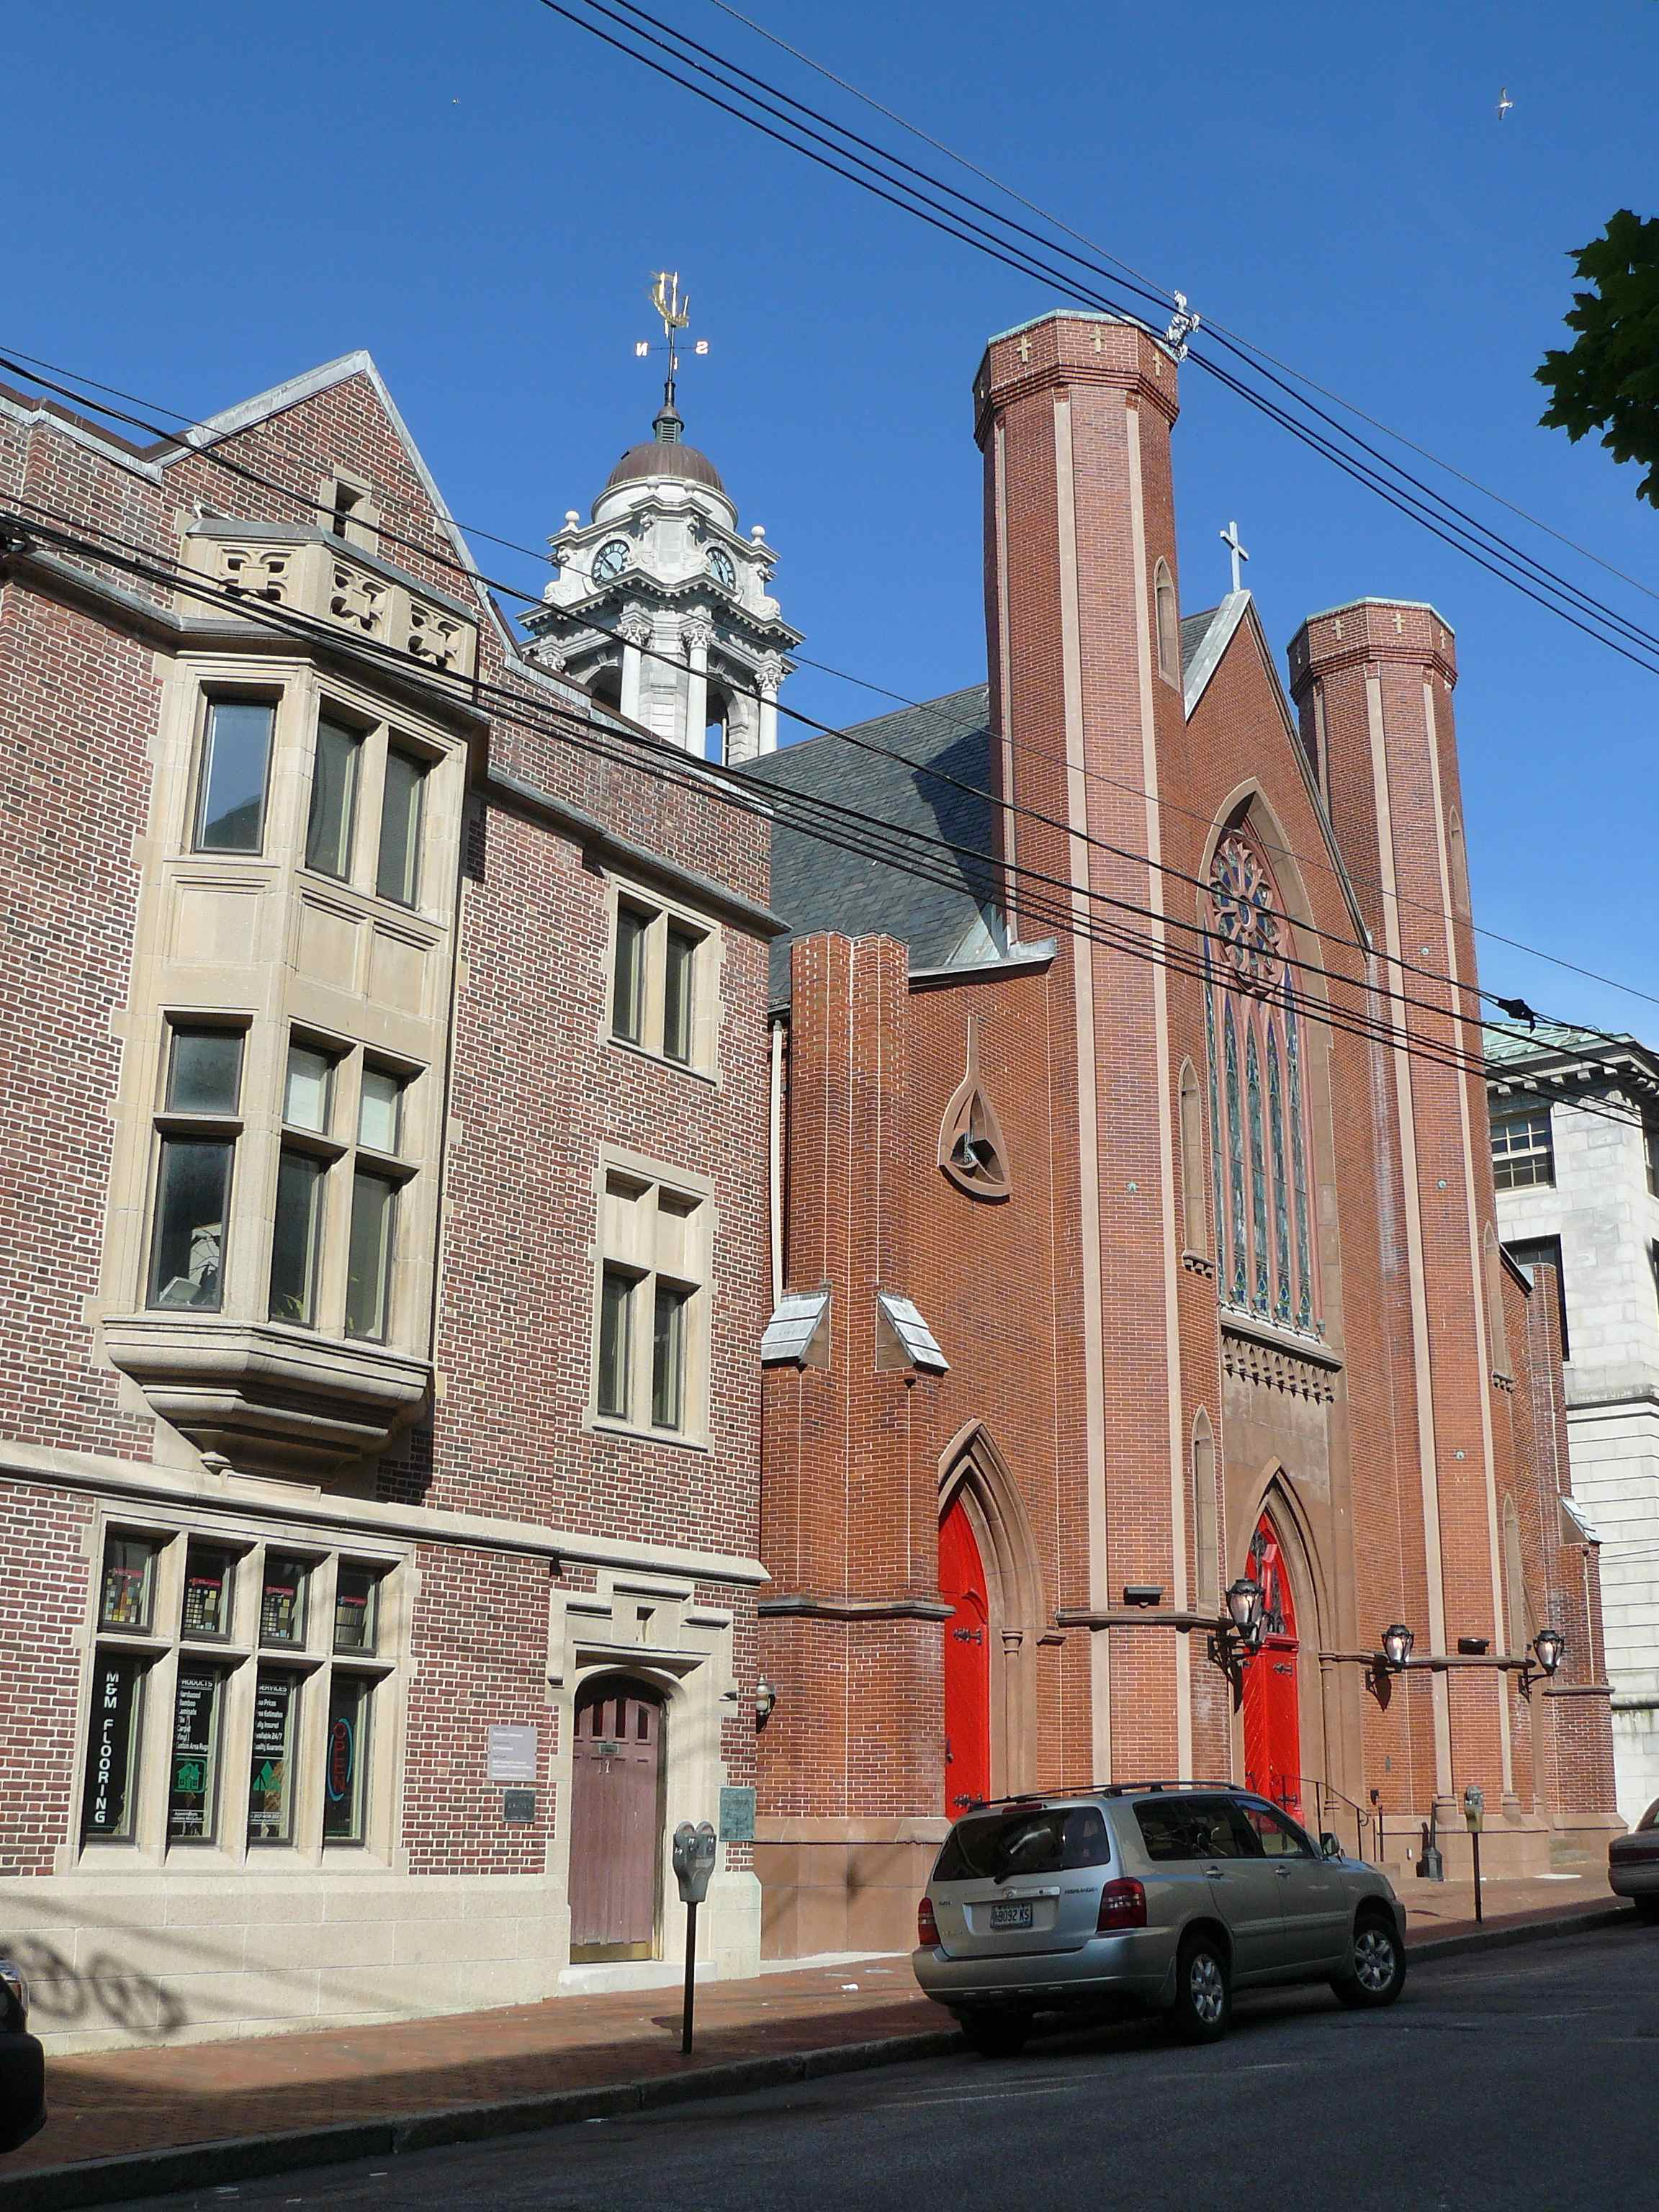 11-19_Chestnut_St_June_2012_Church(1856)_and_Community_House(1924).jpg